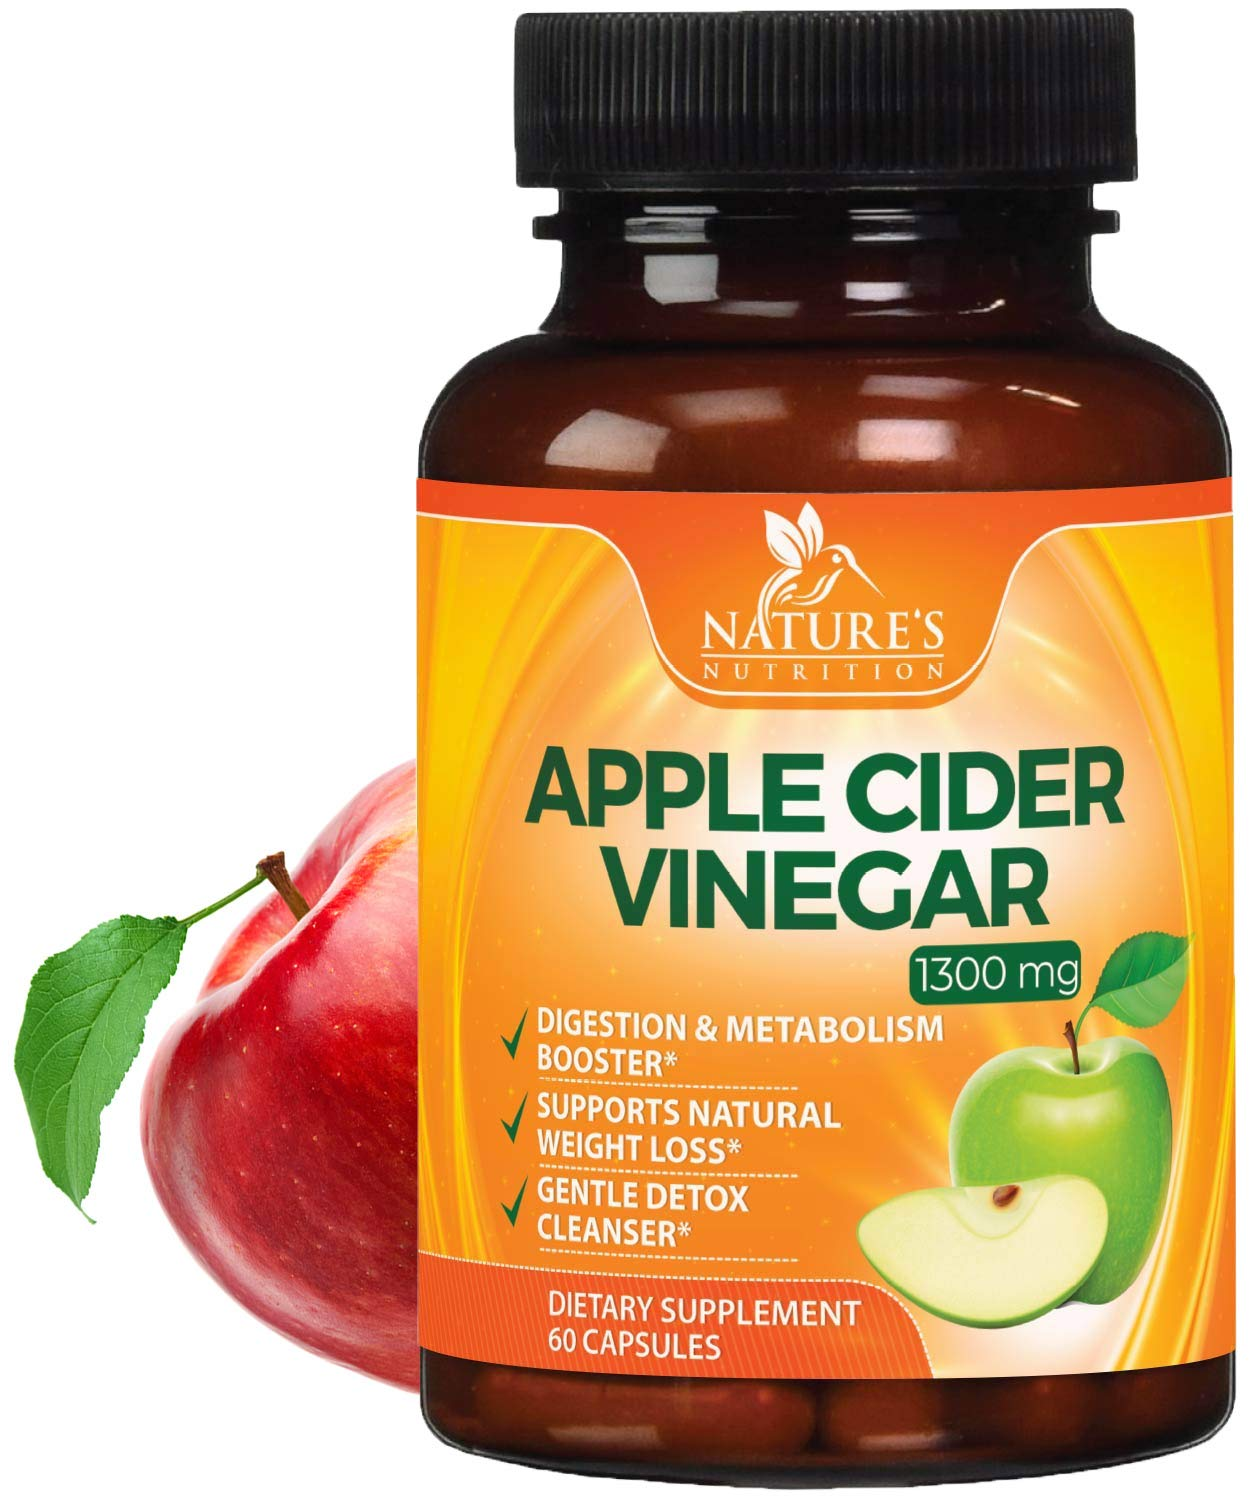 100% Natural Raw Apple Cider Vinegar Pills Highest Potency 1300mg - Weight Loss Appetite Suppressant, Made in USA, Best Vegan ACV, Metabolism Fat Burner & Detox Cleanse Supplement - 60 Capsules